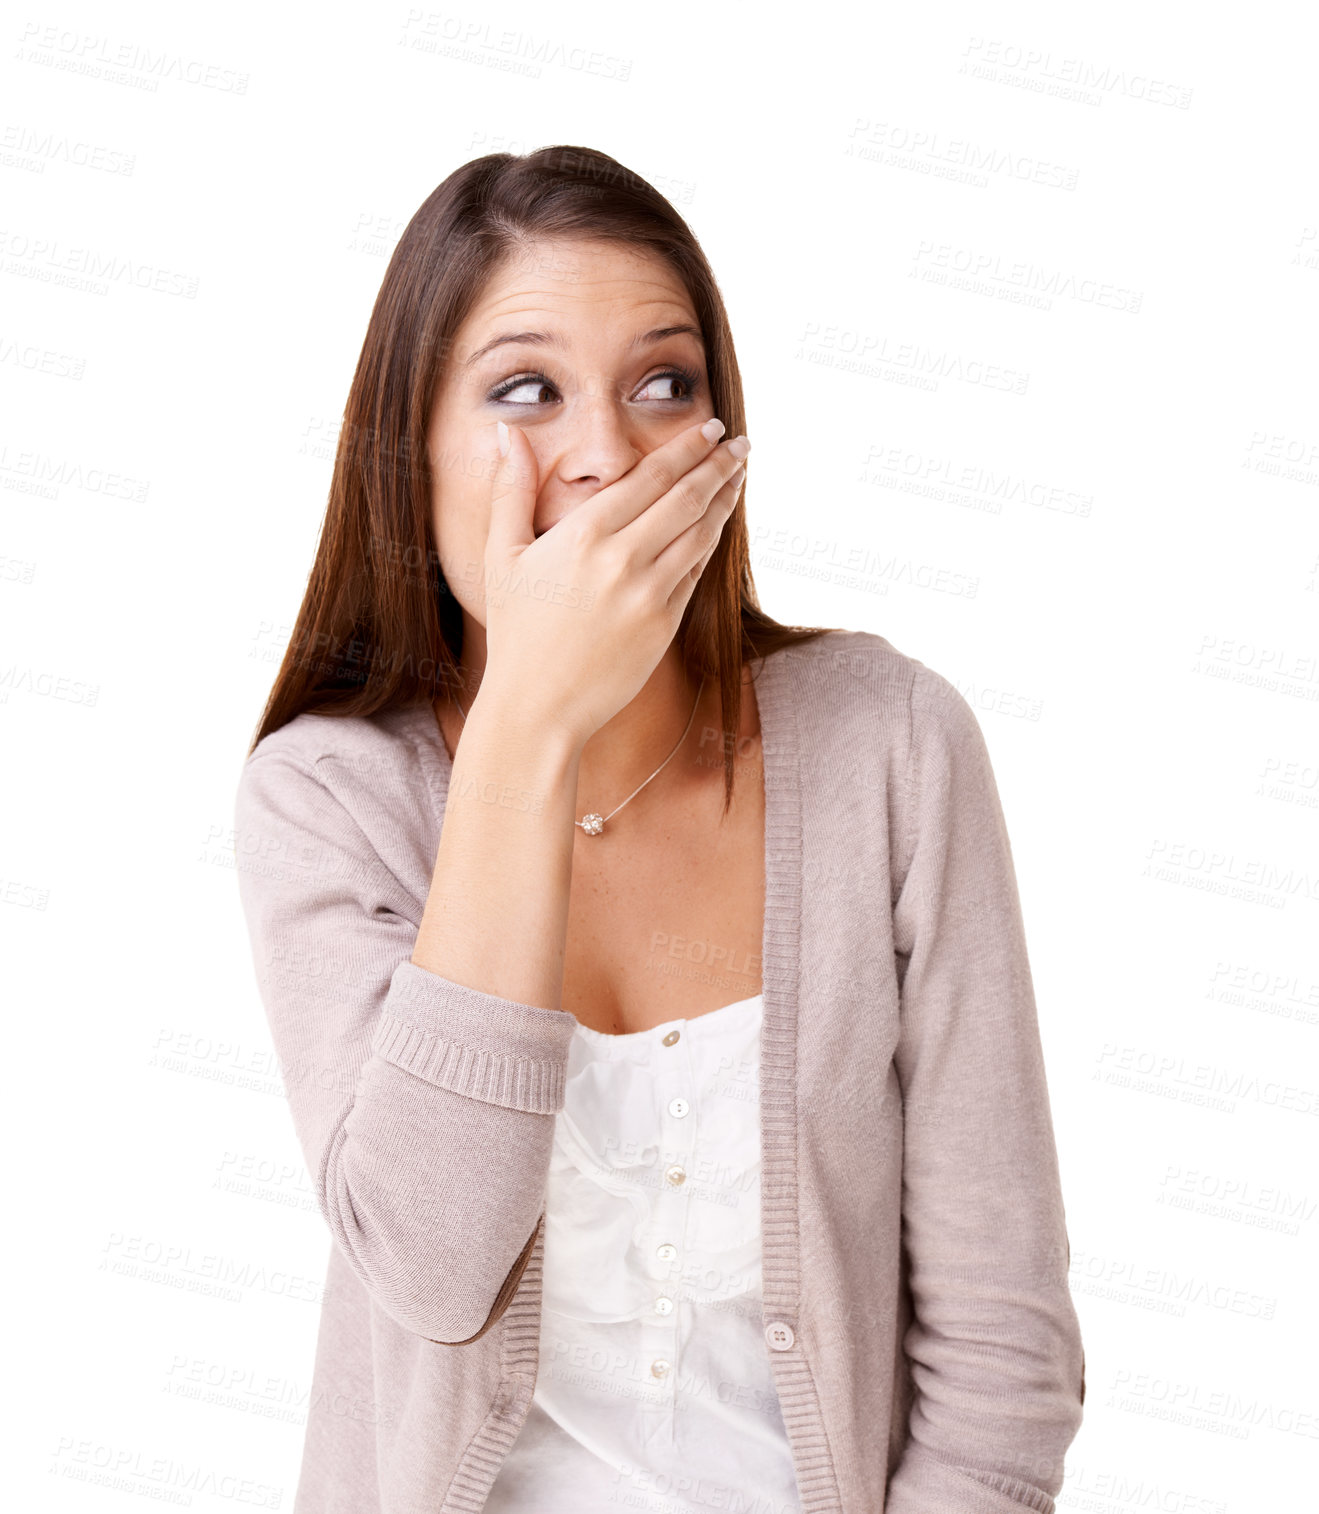 Buy stock photo Surprised young woman covering her mouth against a white background